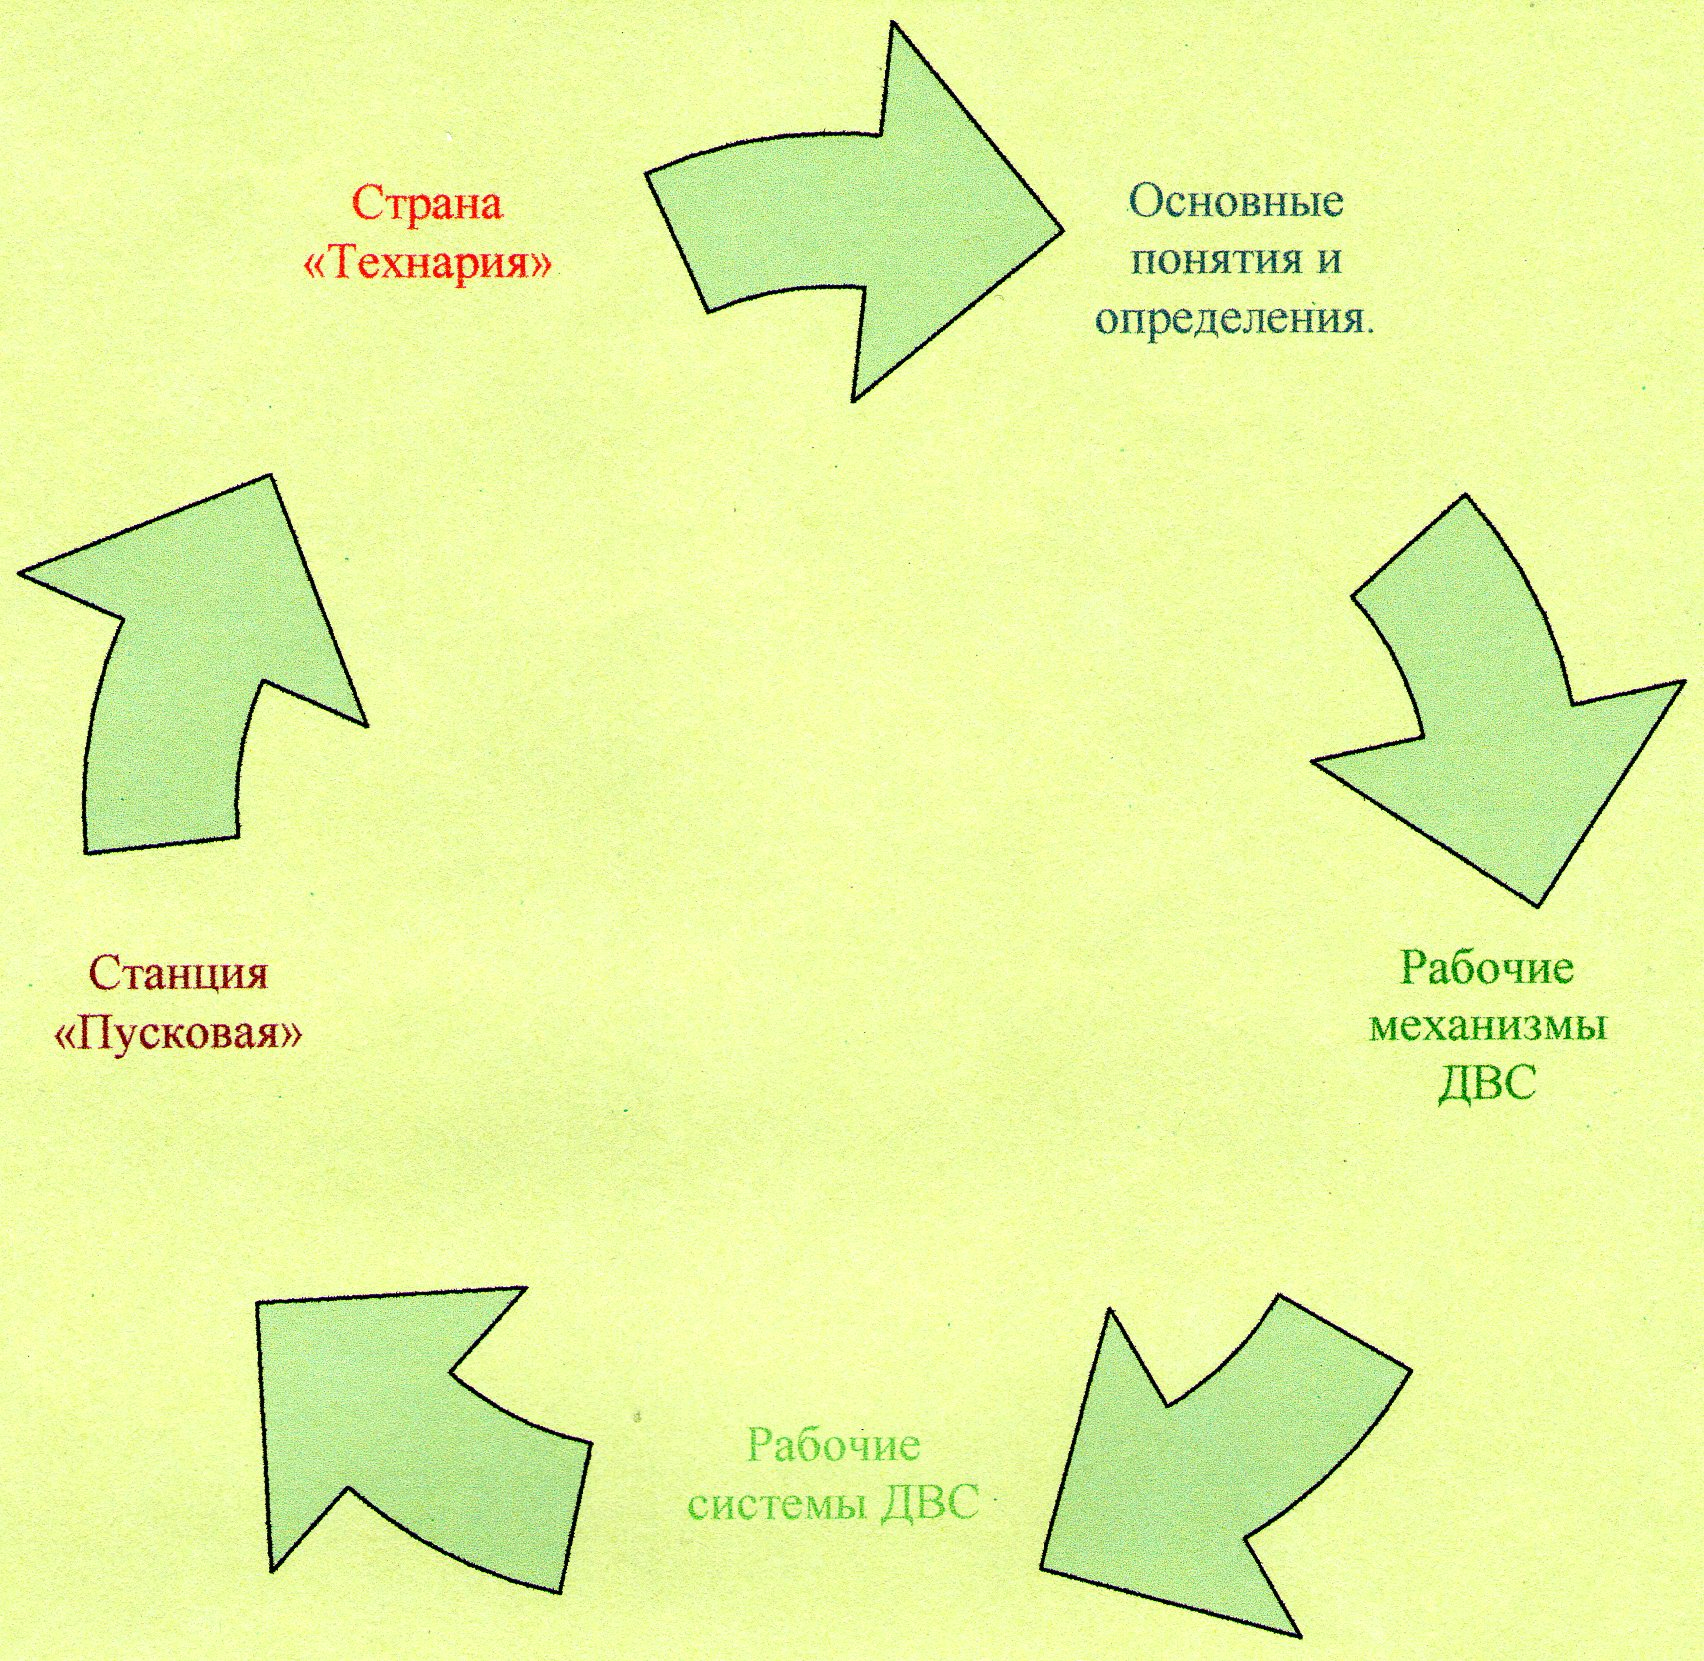 C:\Users\Василий Мельченко\Pictures\img508.jpg